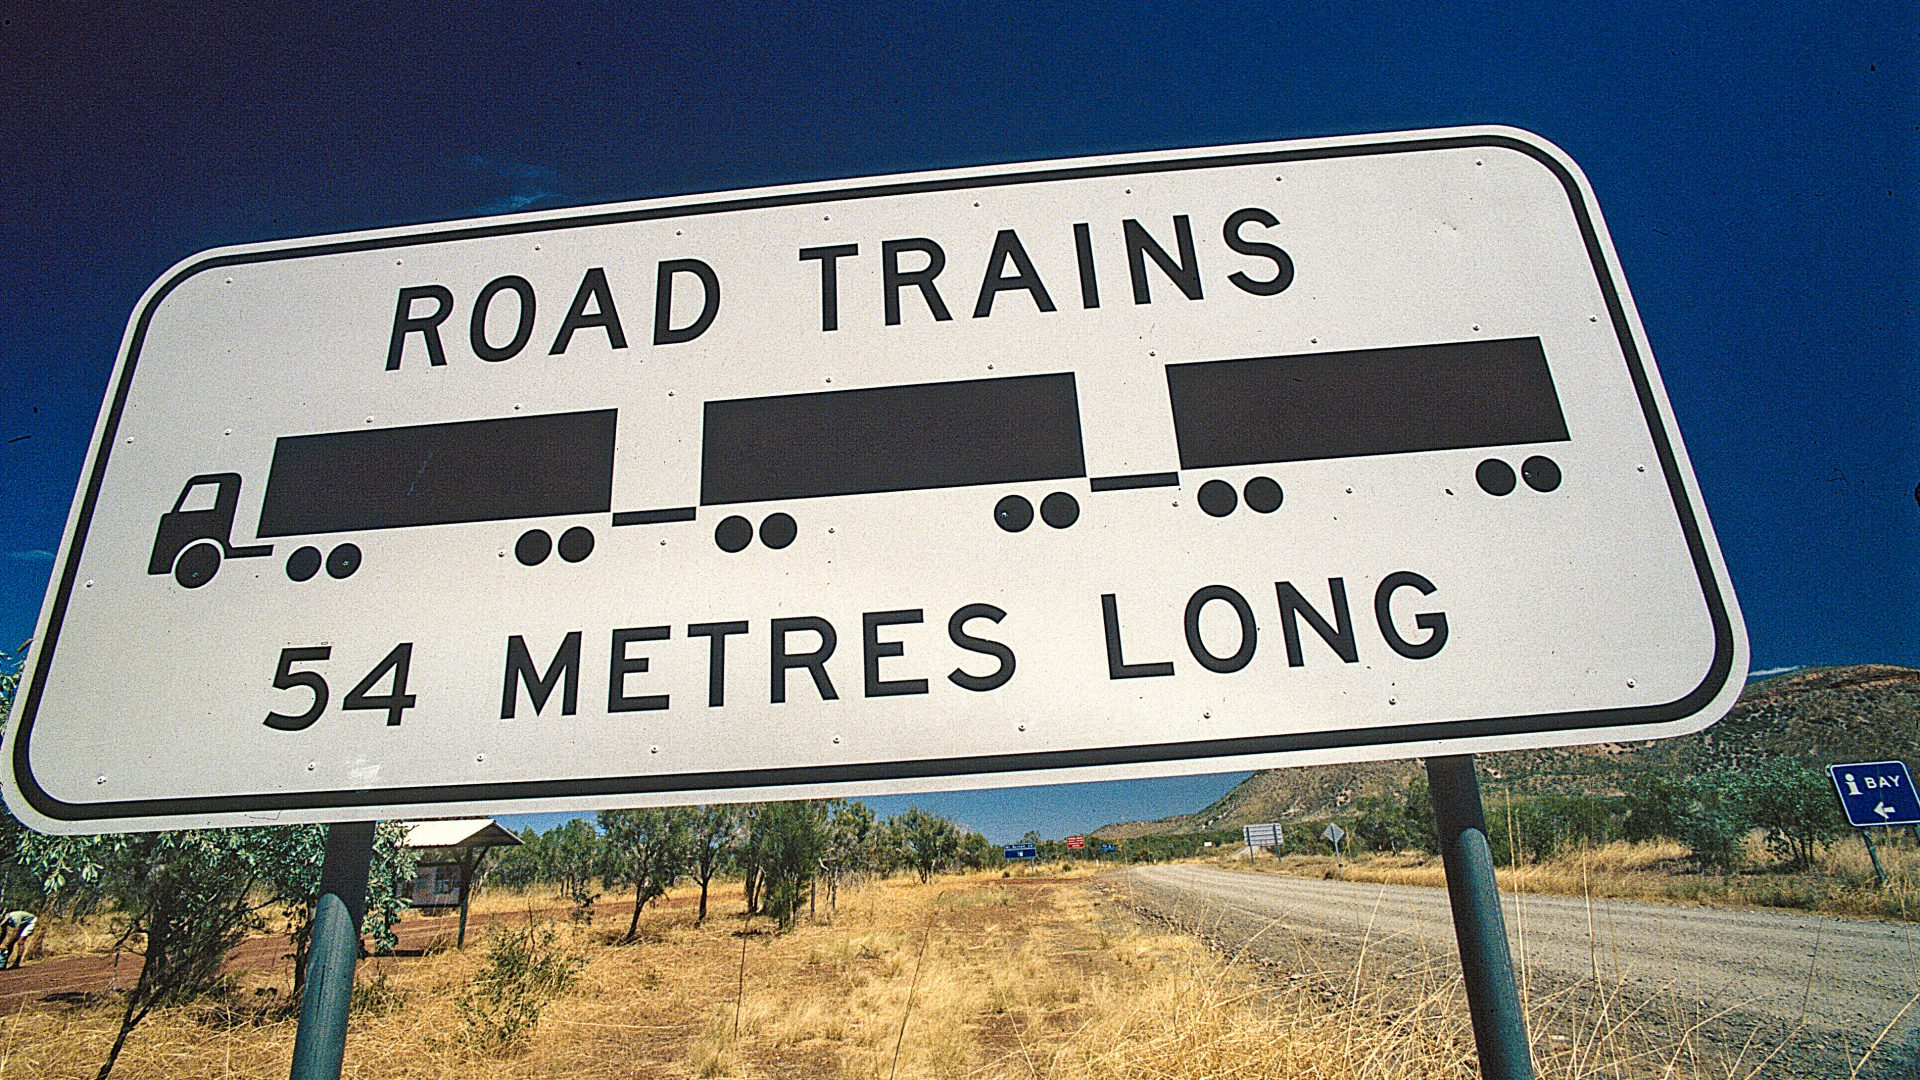 A sign in outback Australia alerts drivers to 54-metre-long road trains.